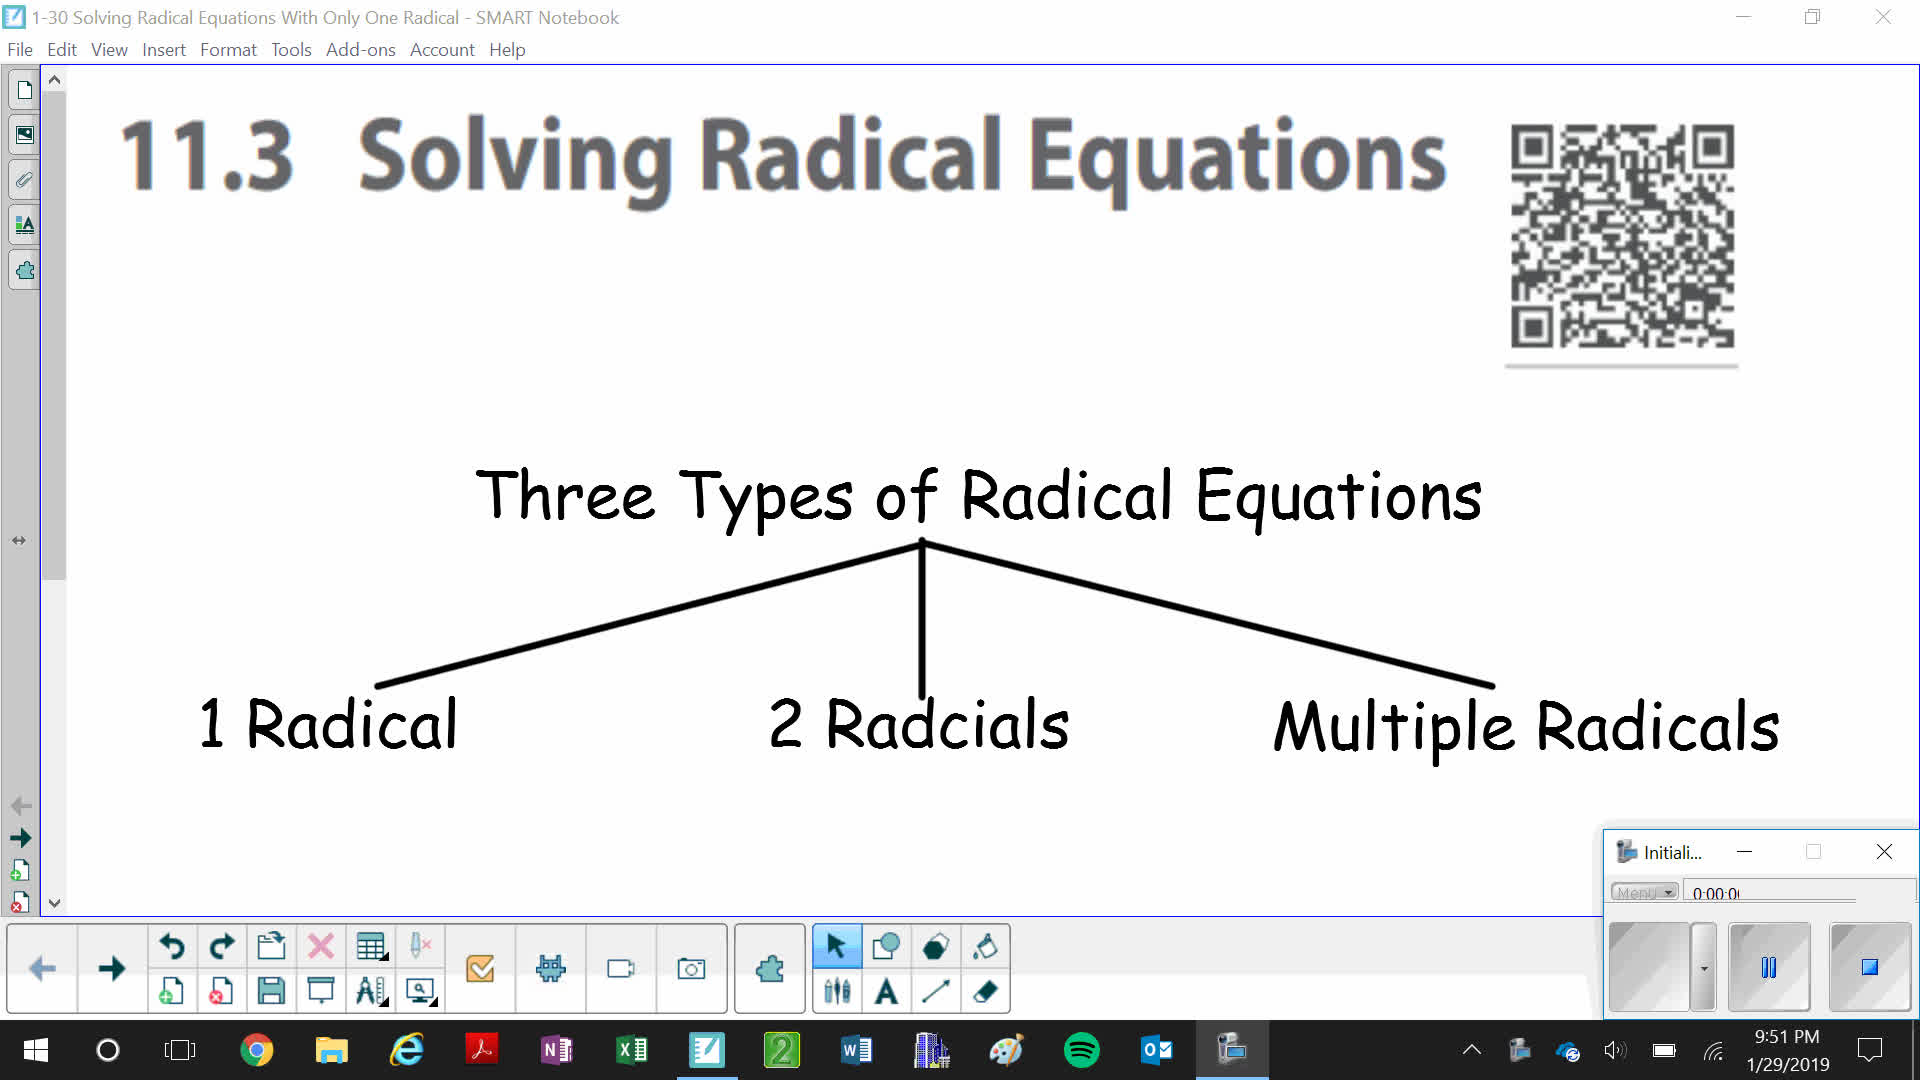 Solving Radical Equations with Only One Radical